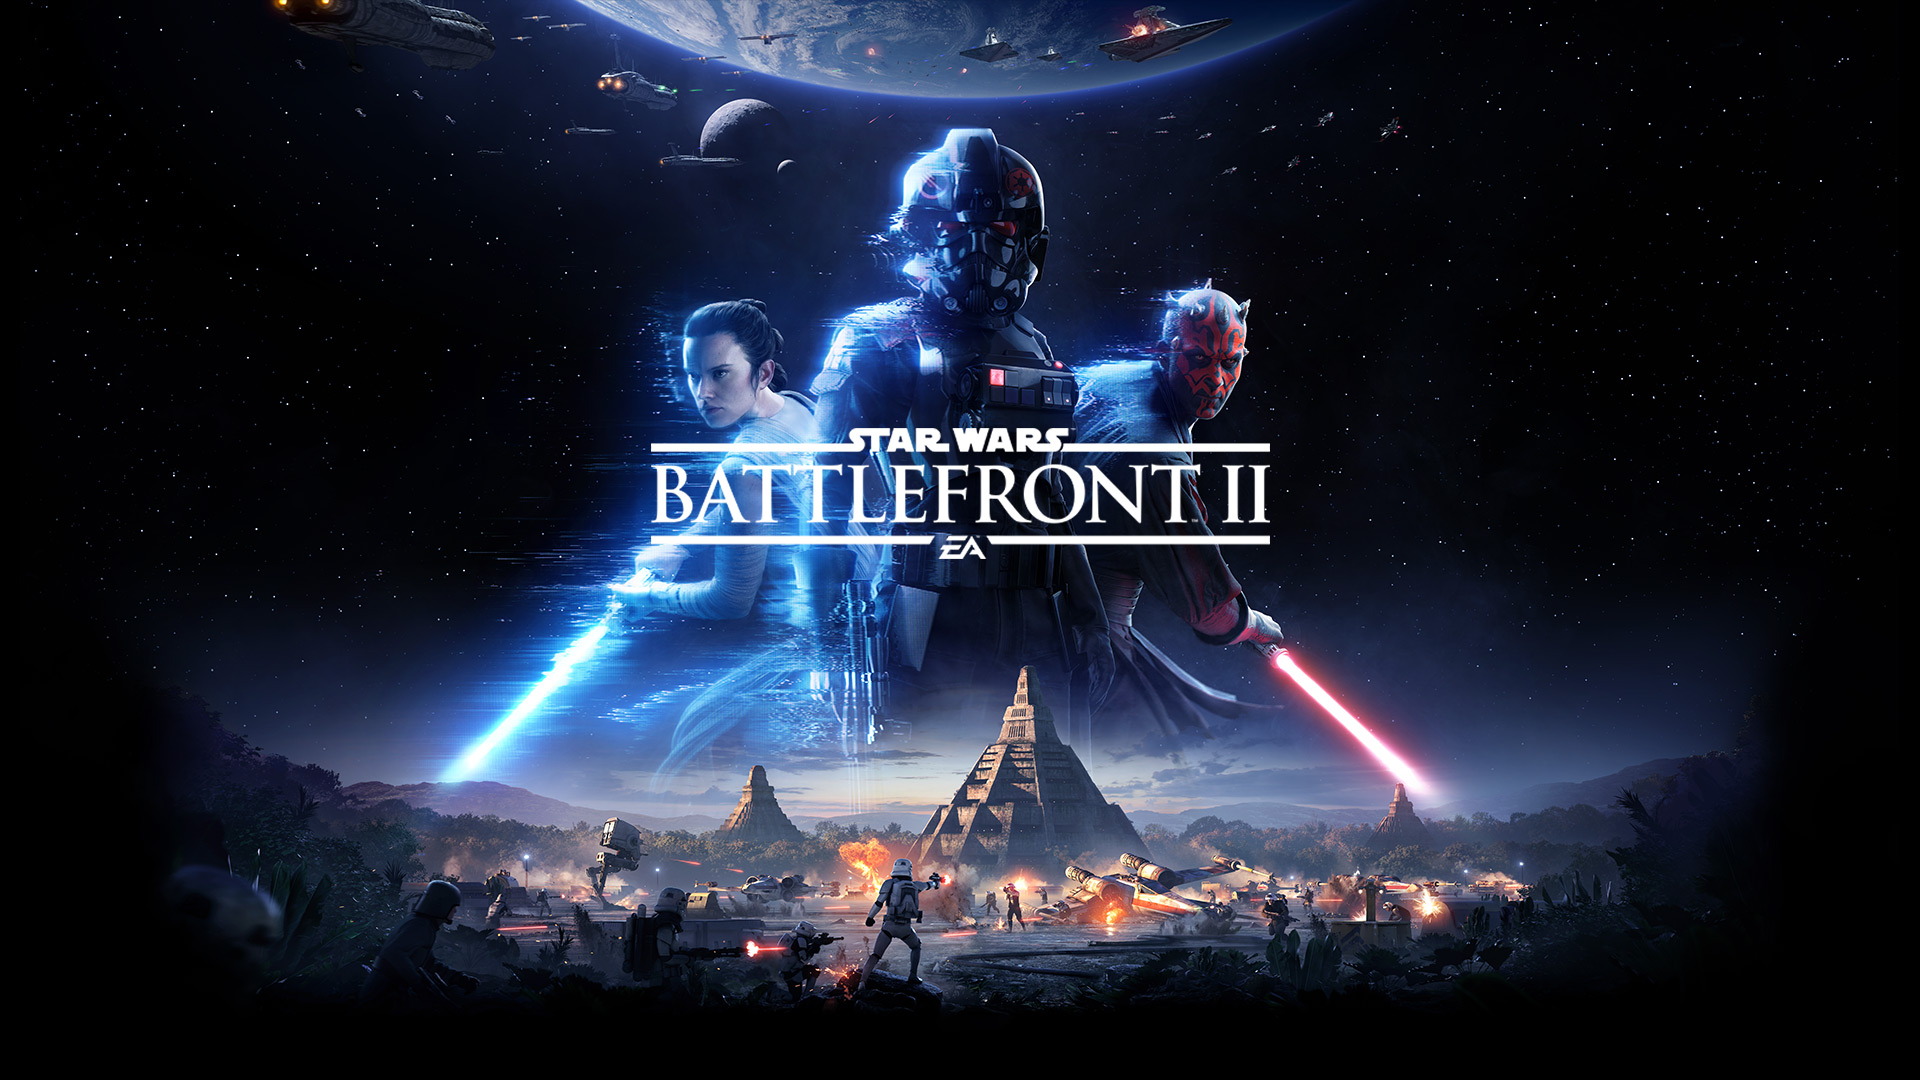 Star Wars Battlefront II.